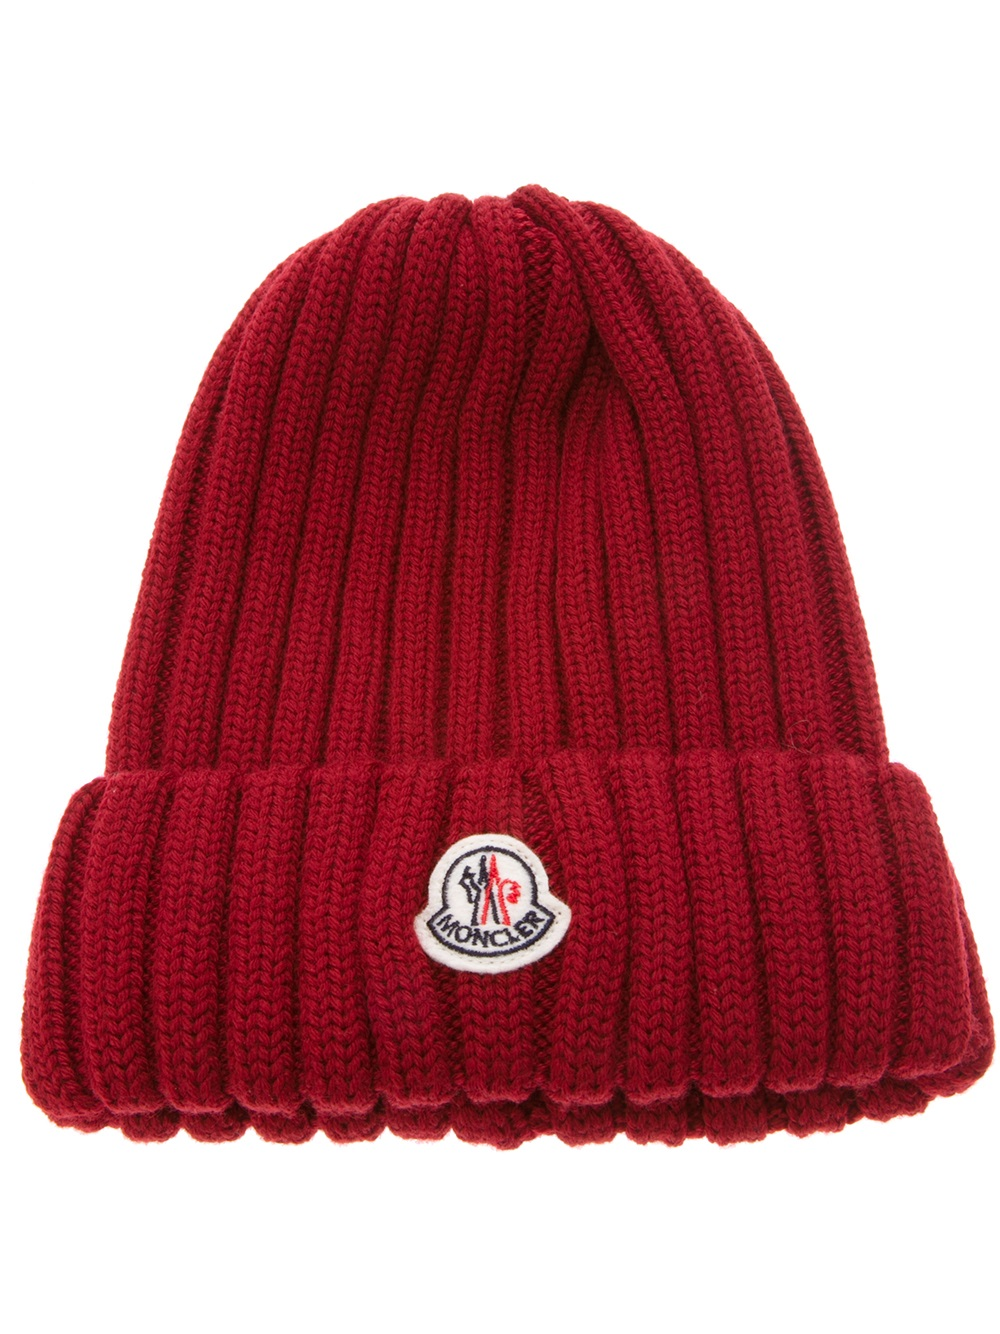 cccde820dac Lyst - Moncler Wool Ribbed Knit Beanie in Red for Men